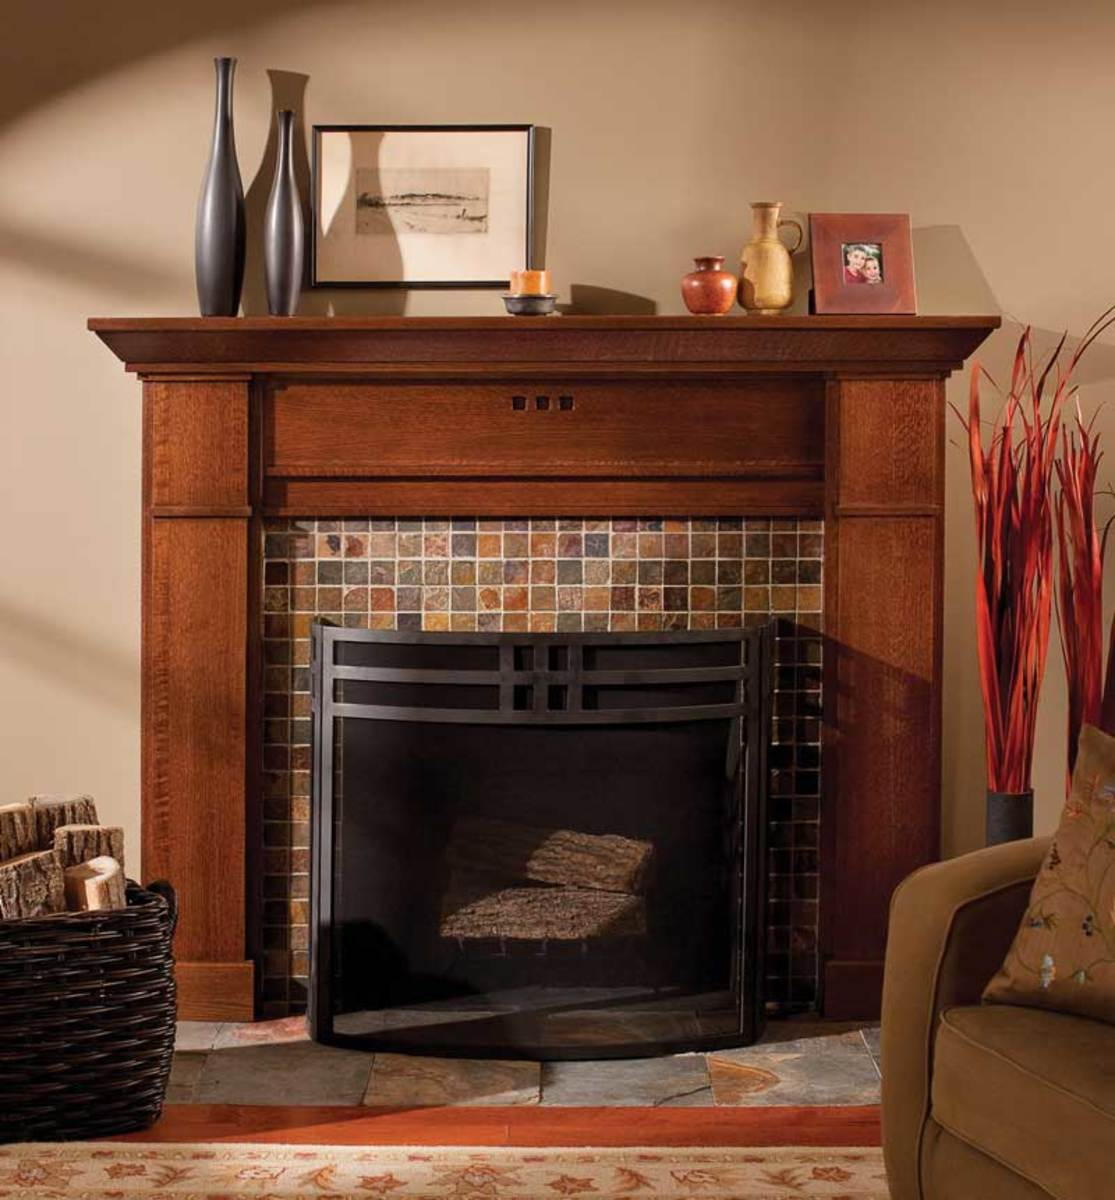 Bungalow Fireplace Mantel A Face For The Fireplace Arts And Crafts Homes And The